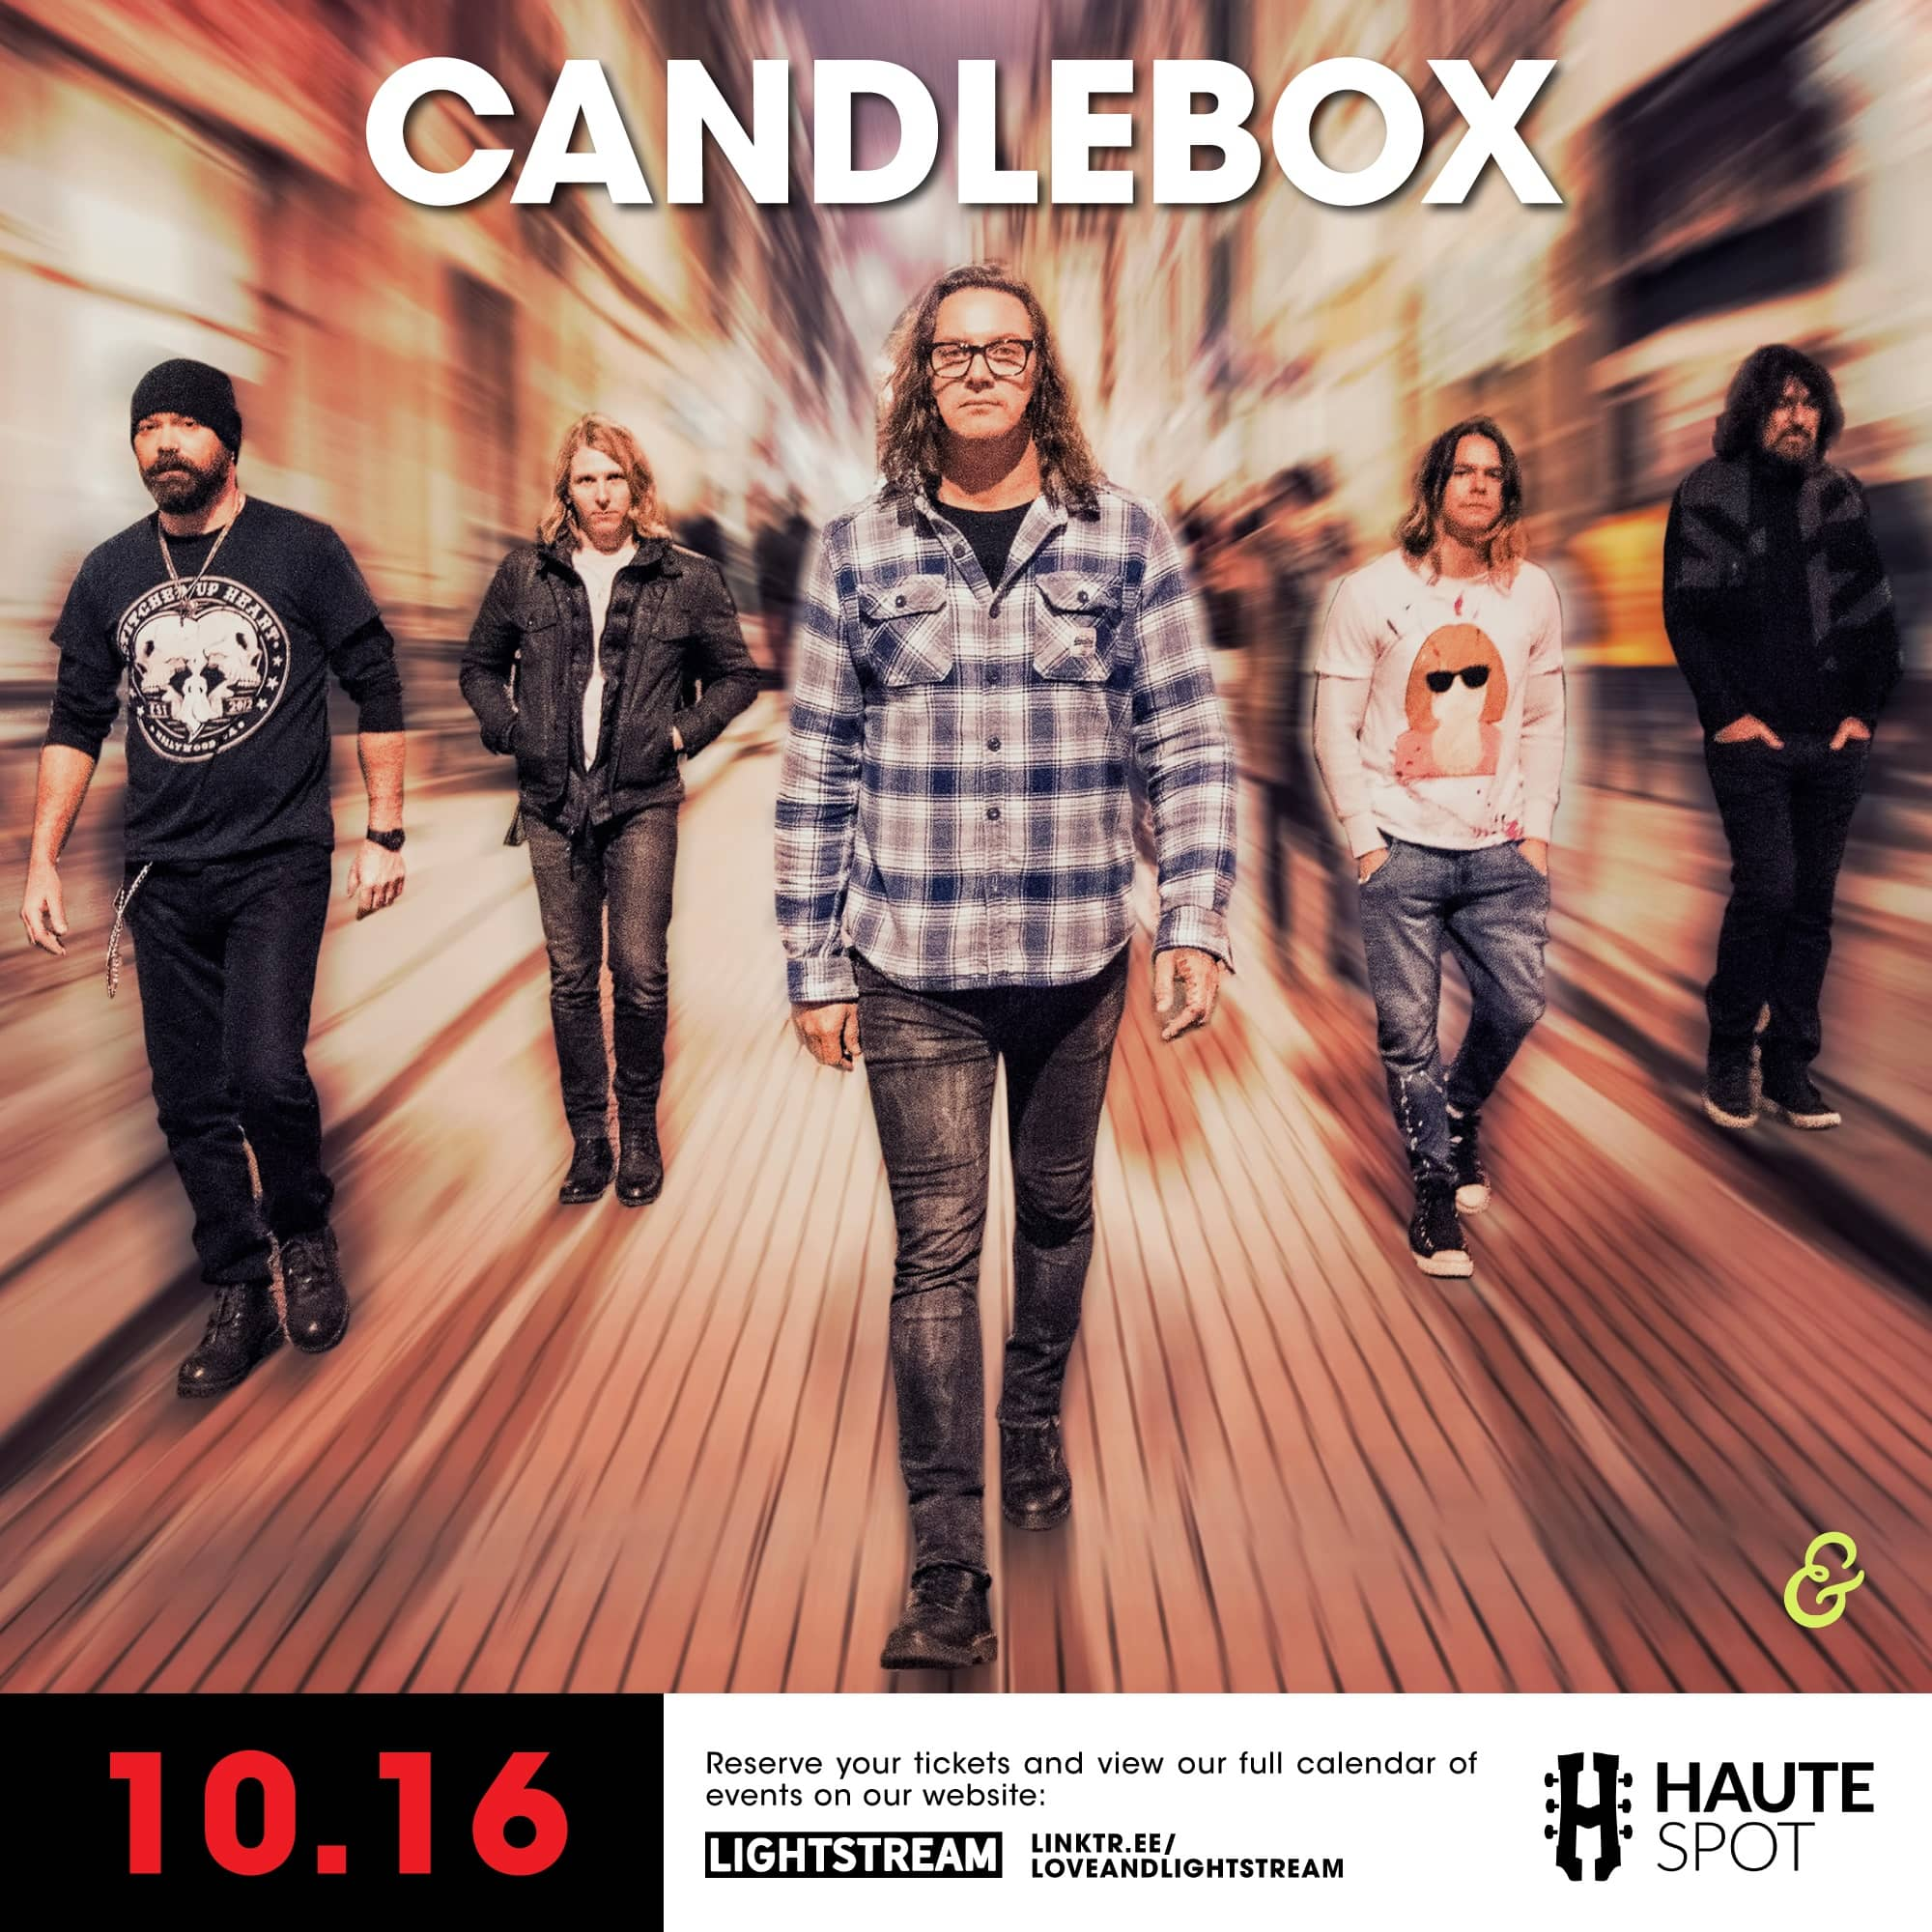 Candlebox concert poster